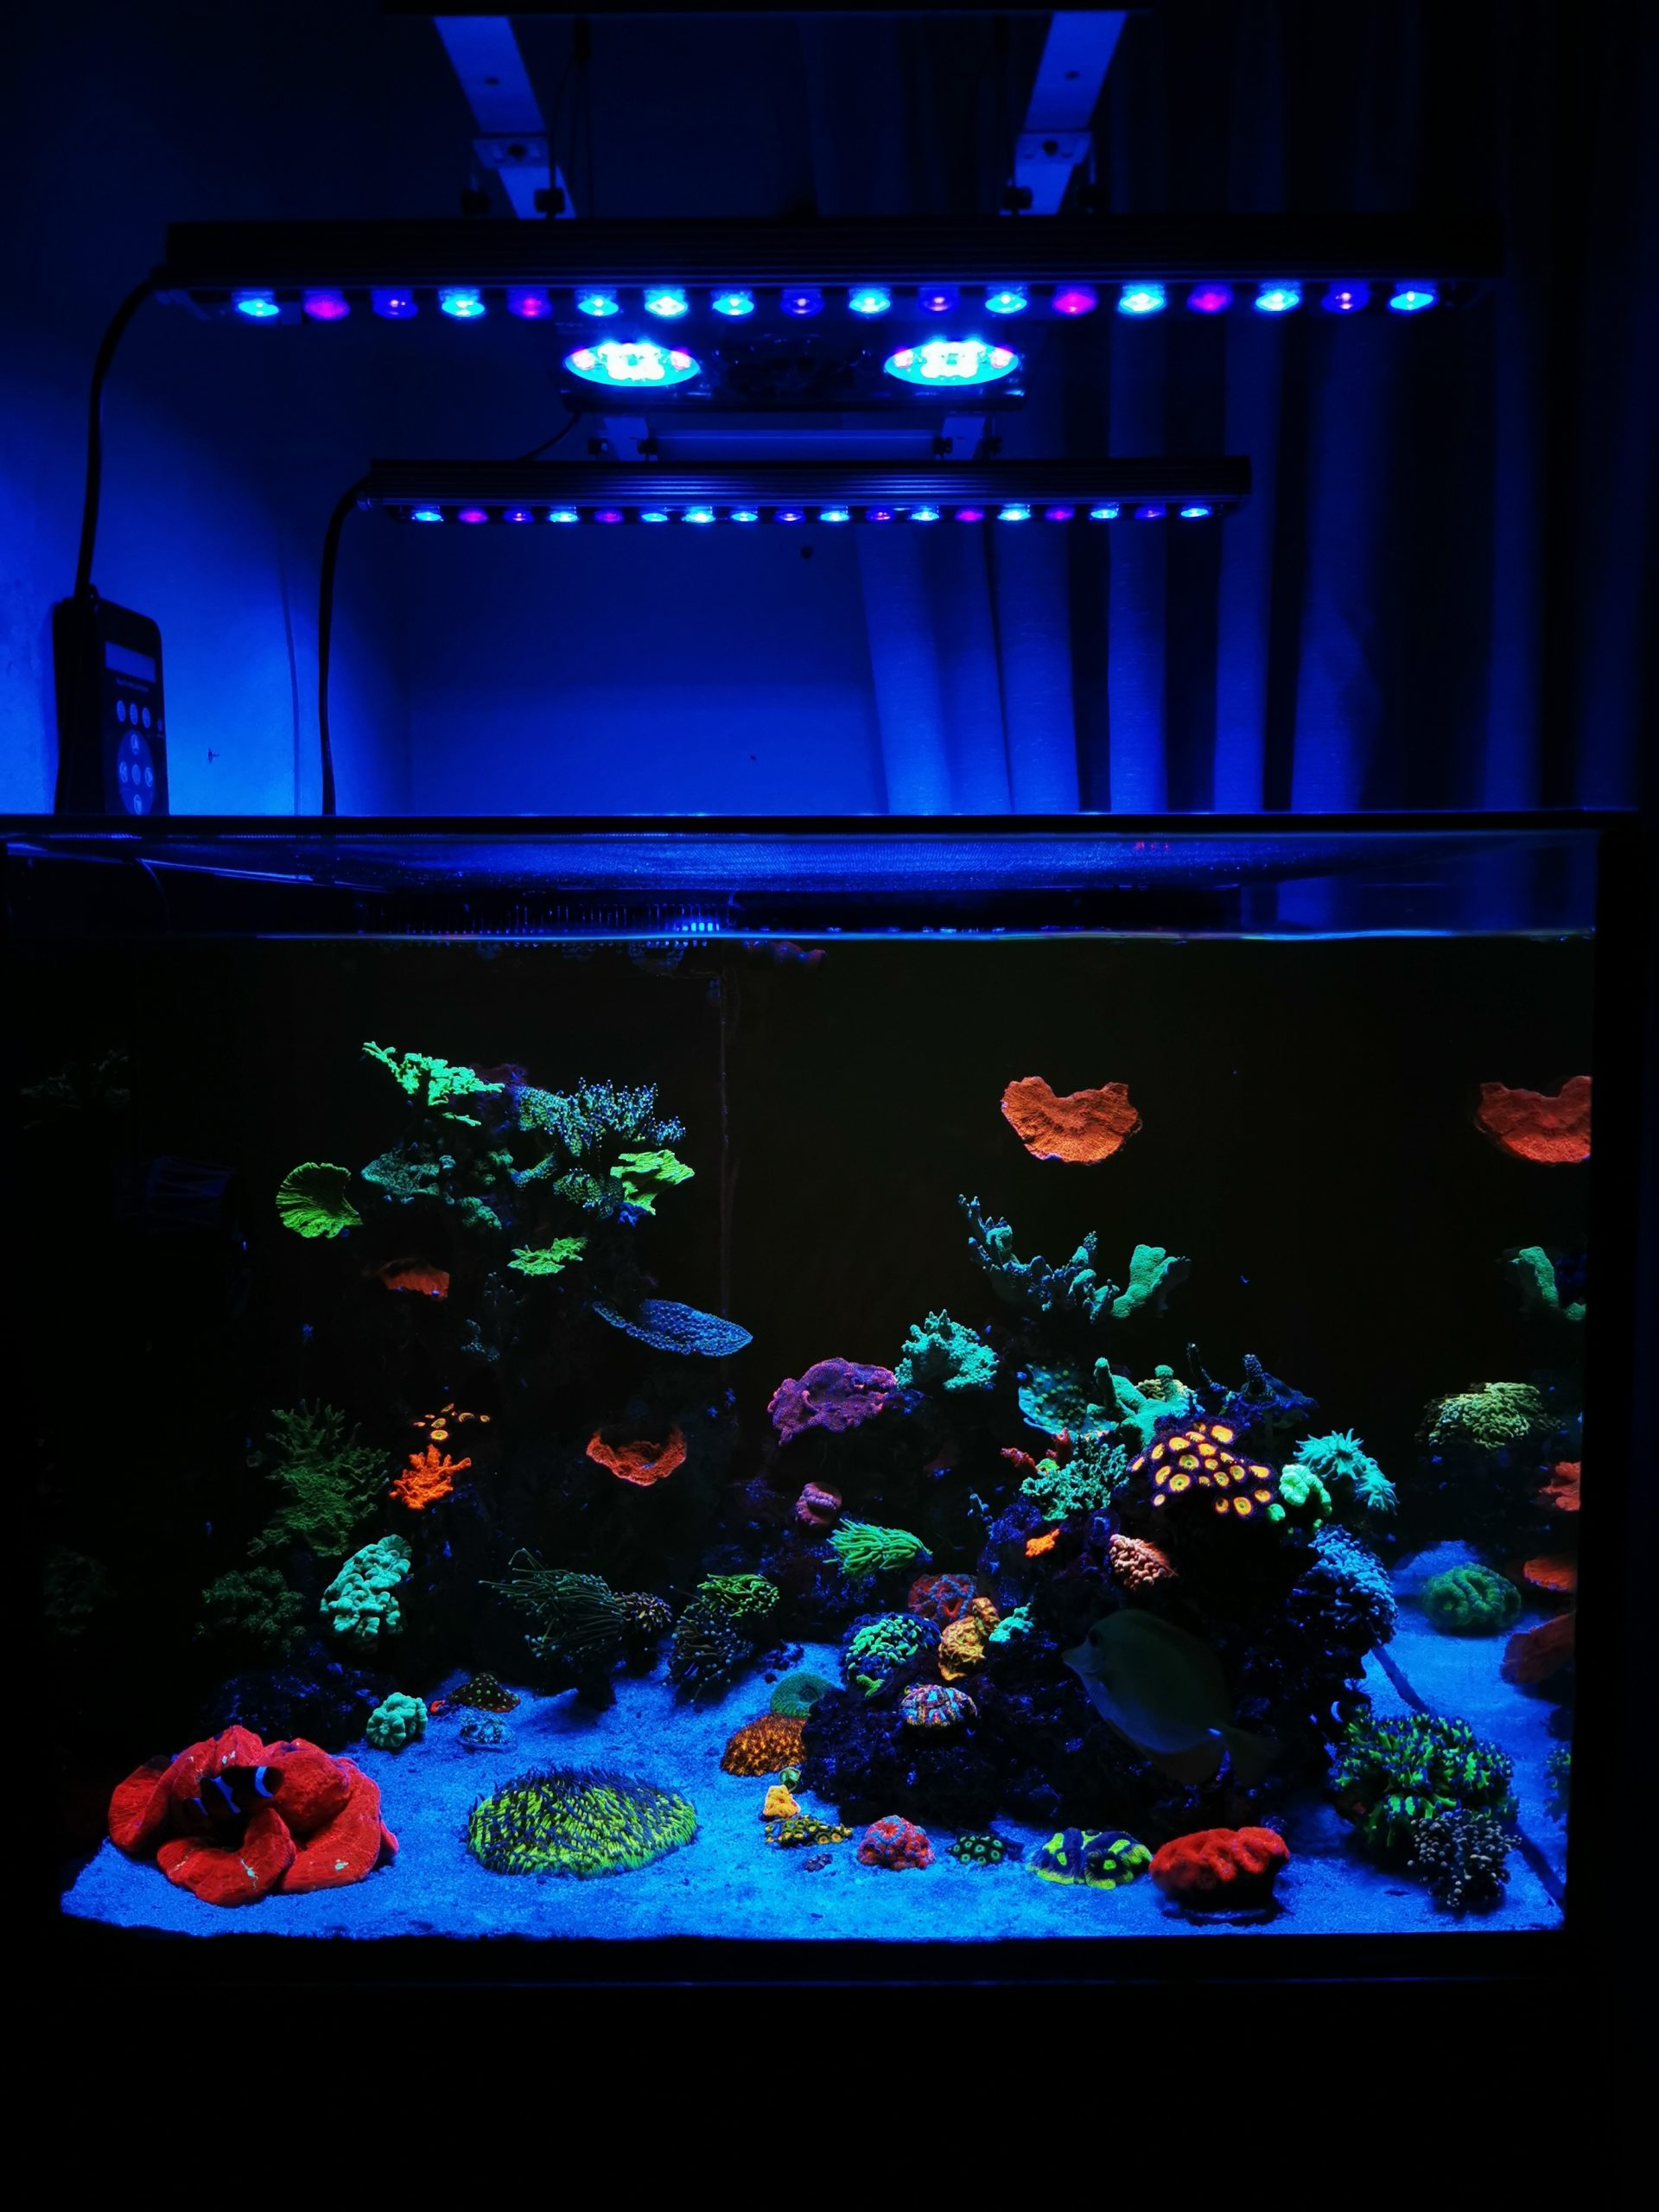 Orphek-OR3-Reef-Aquarium-LED-Bars-combined-with-other-brands